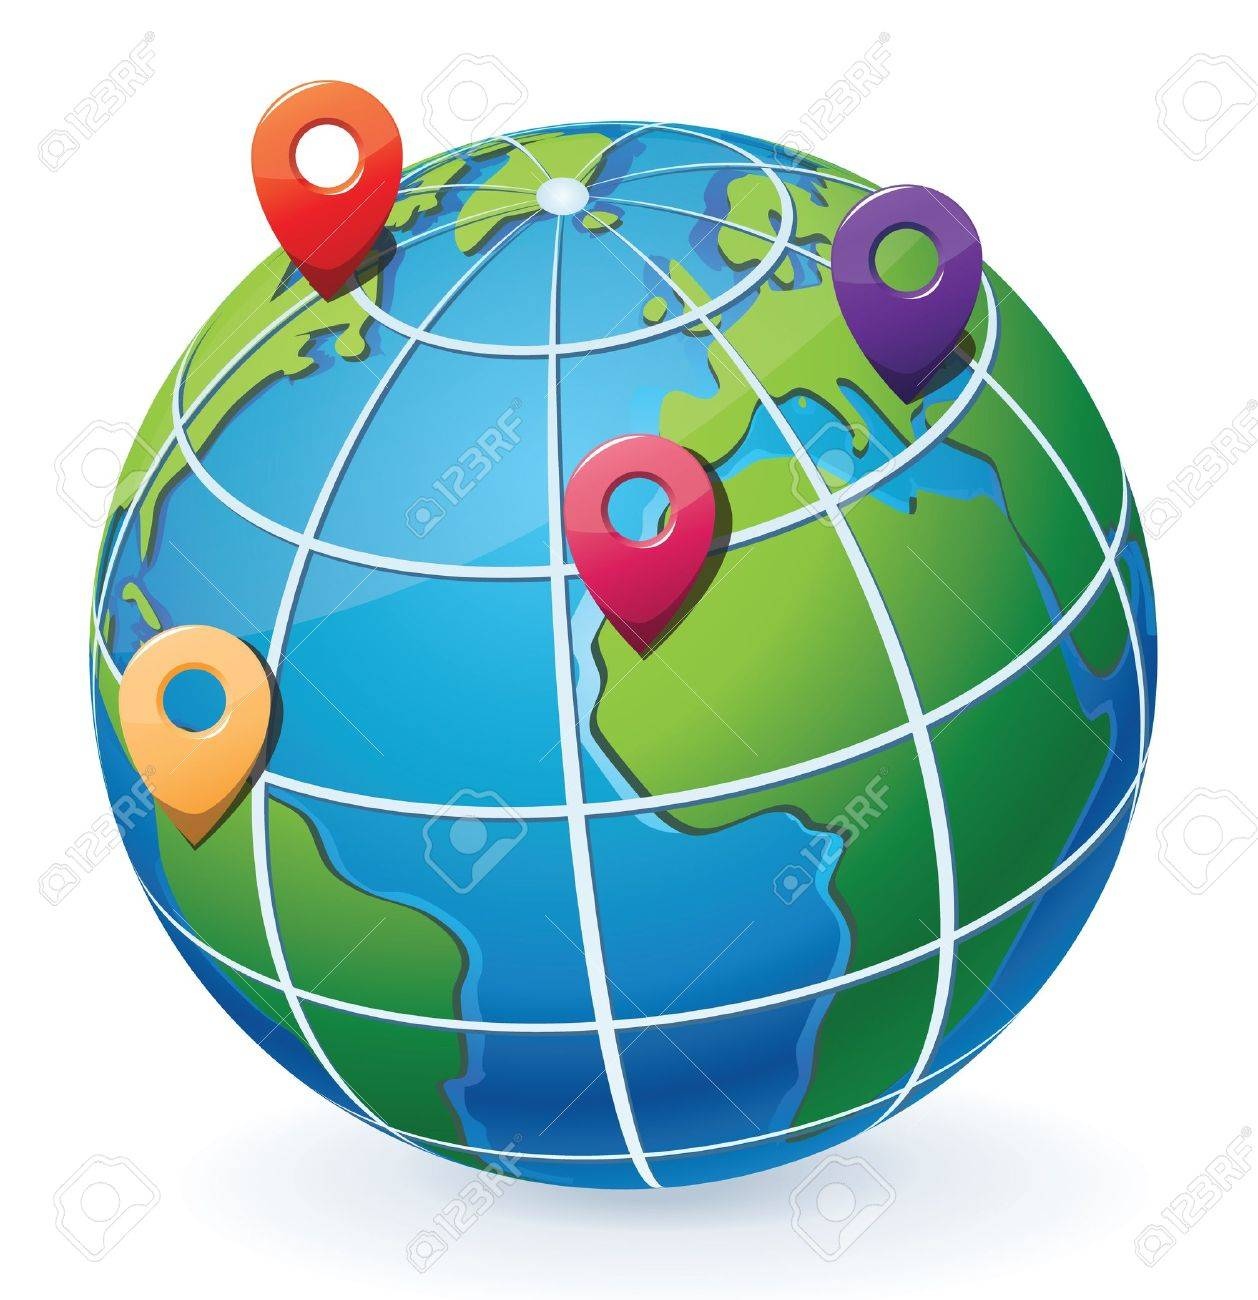 Globe with location pointers - 14965683